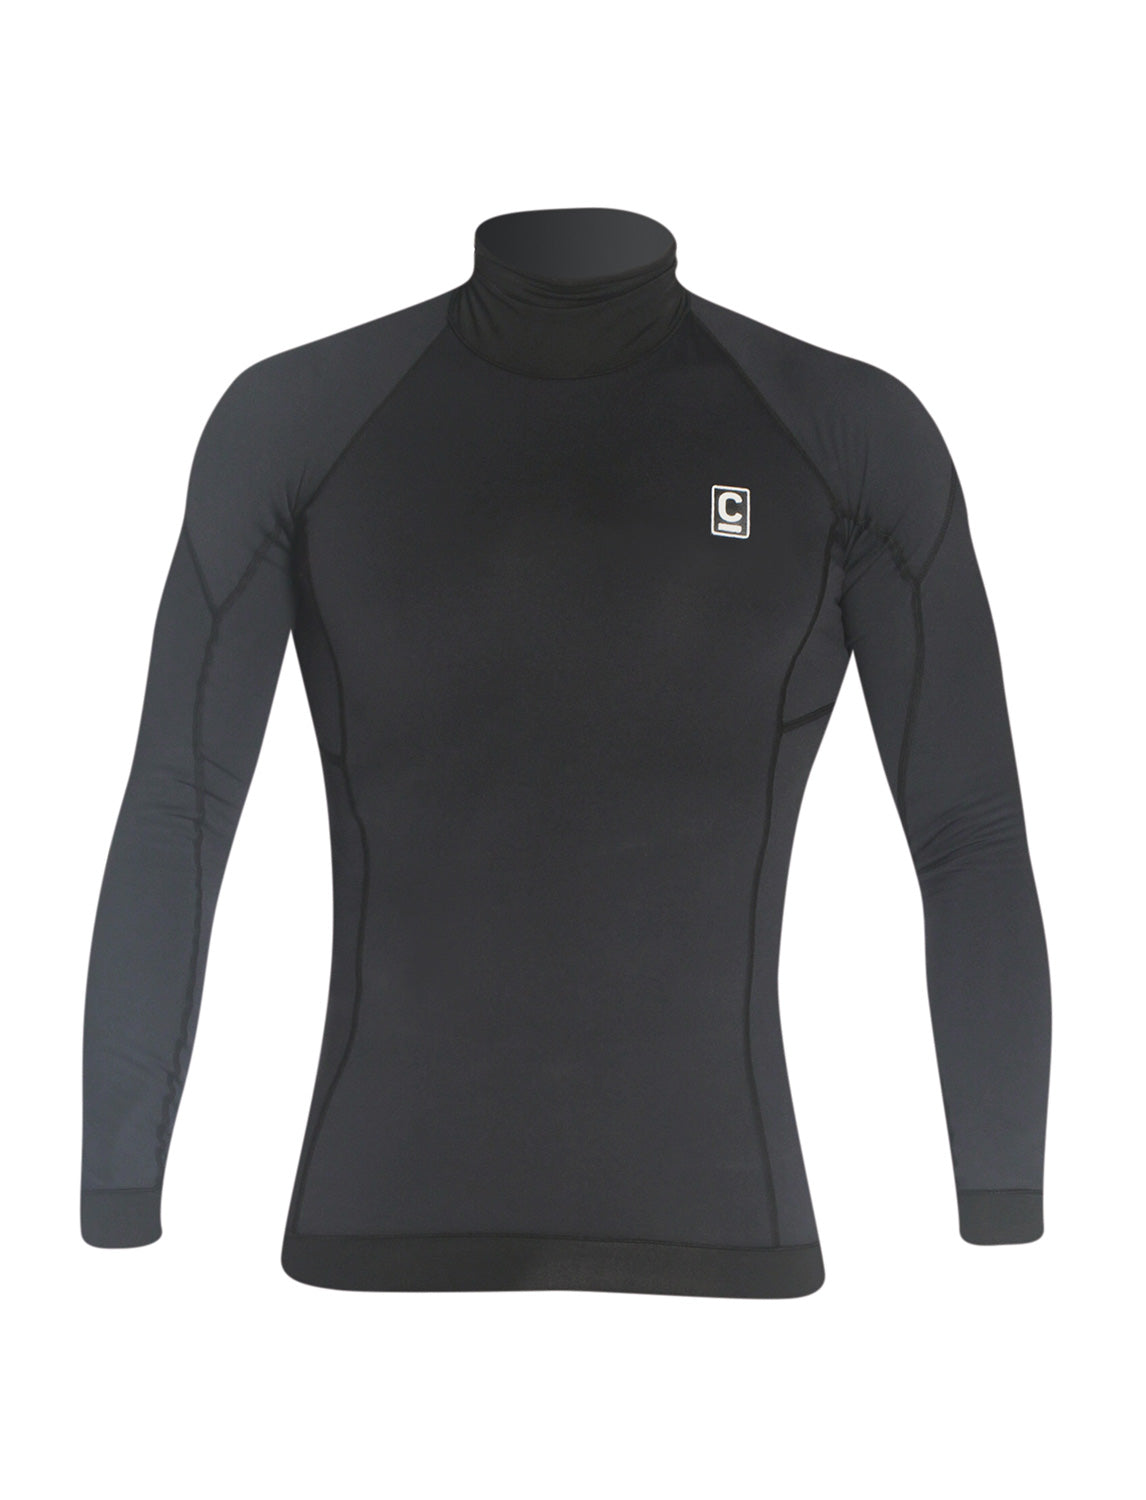 MENS LONG SLEEVE HDi SKIN